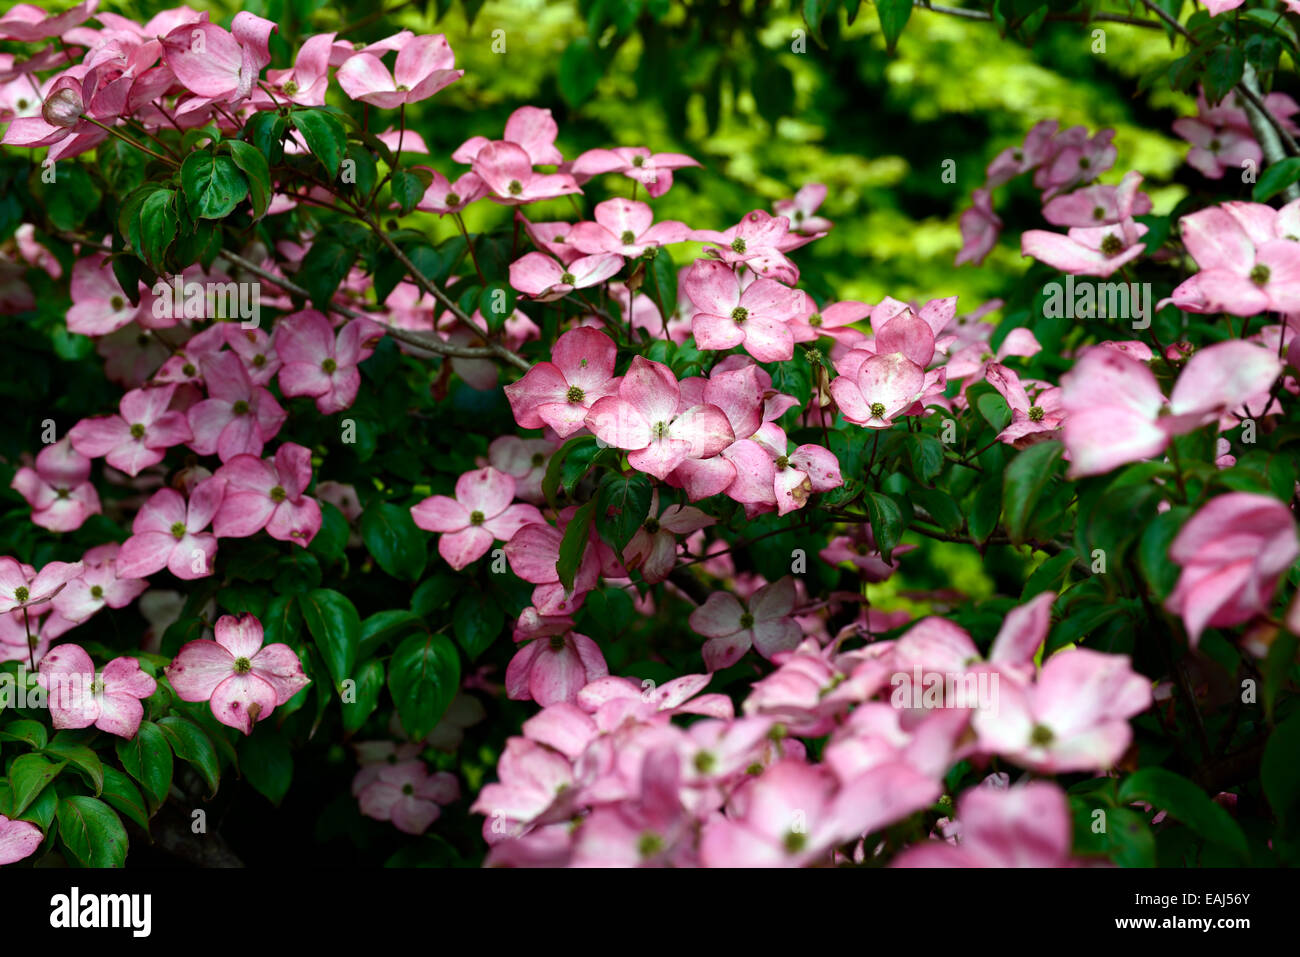 cornus kousa miss satomi pink flowers flower flowering dogwood stock photo royalty free image. Black Bedroom Furniture Sets. Home Design Ideas